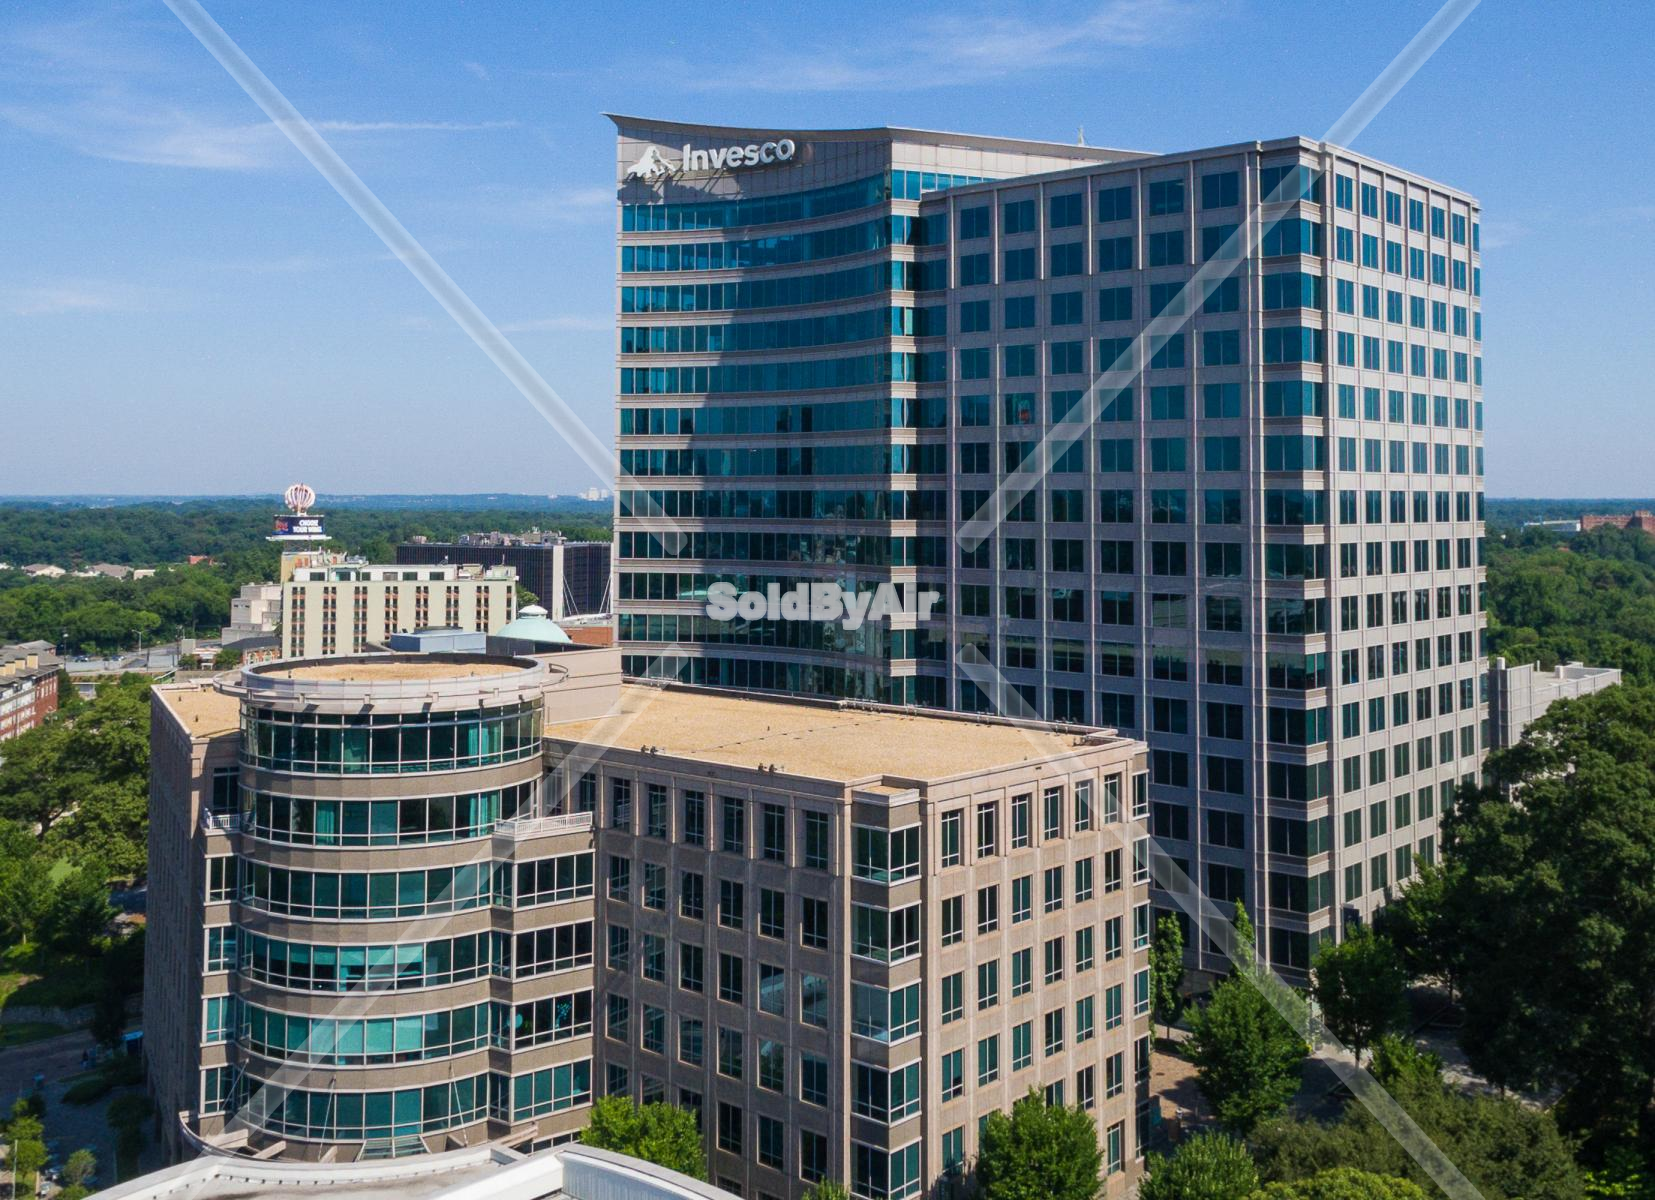 Drone Photo of Uptown Atlanta Invseco Building  in Atlanta Georgia